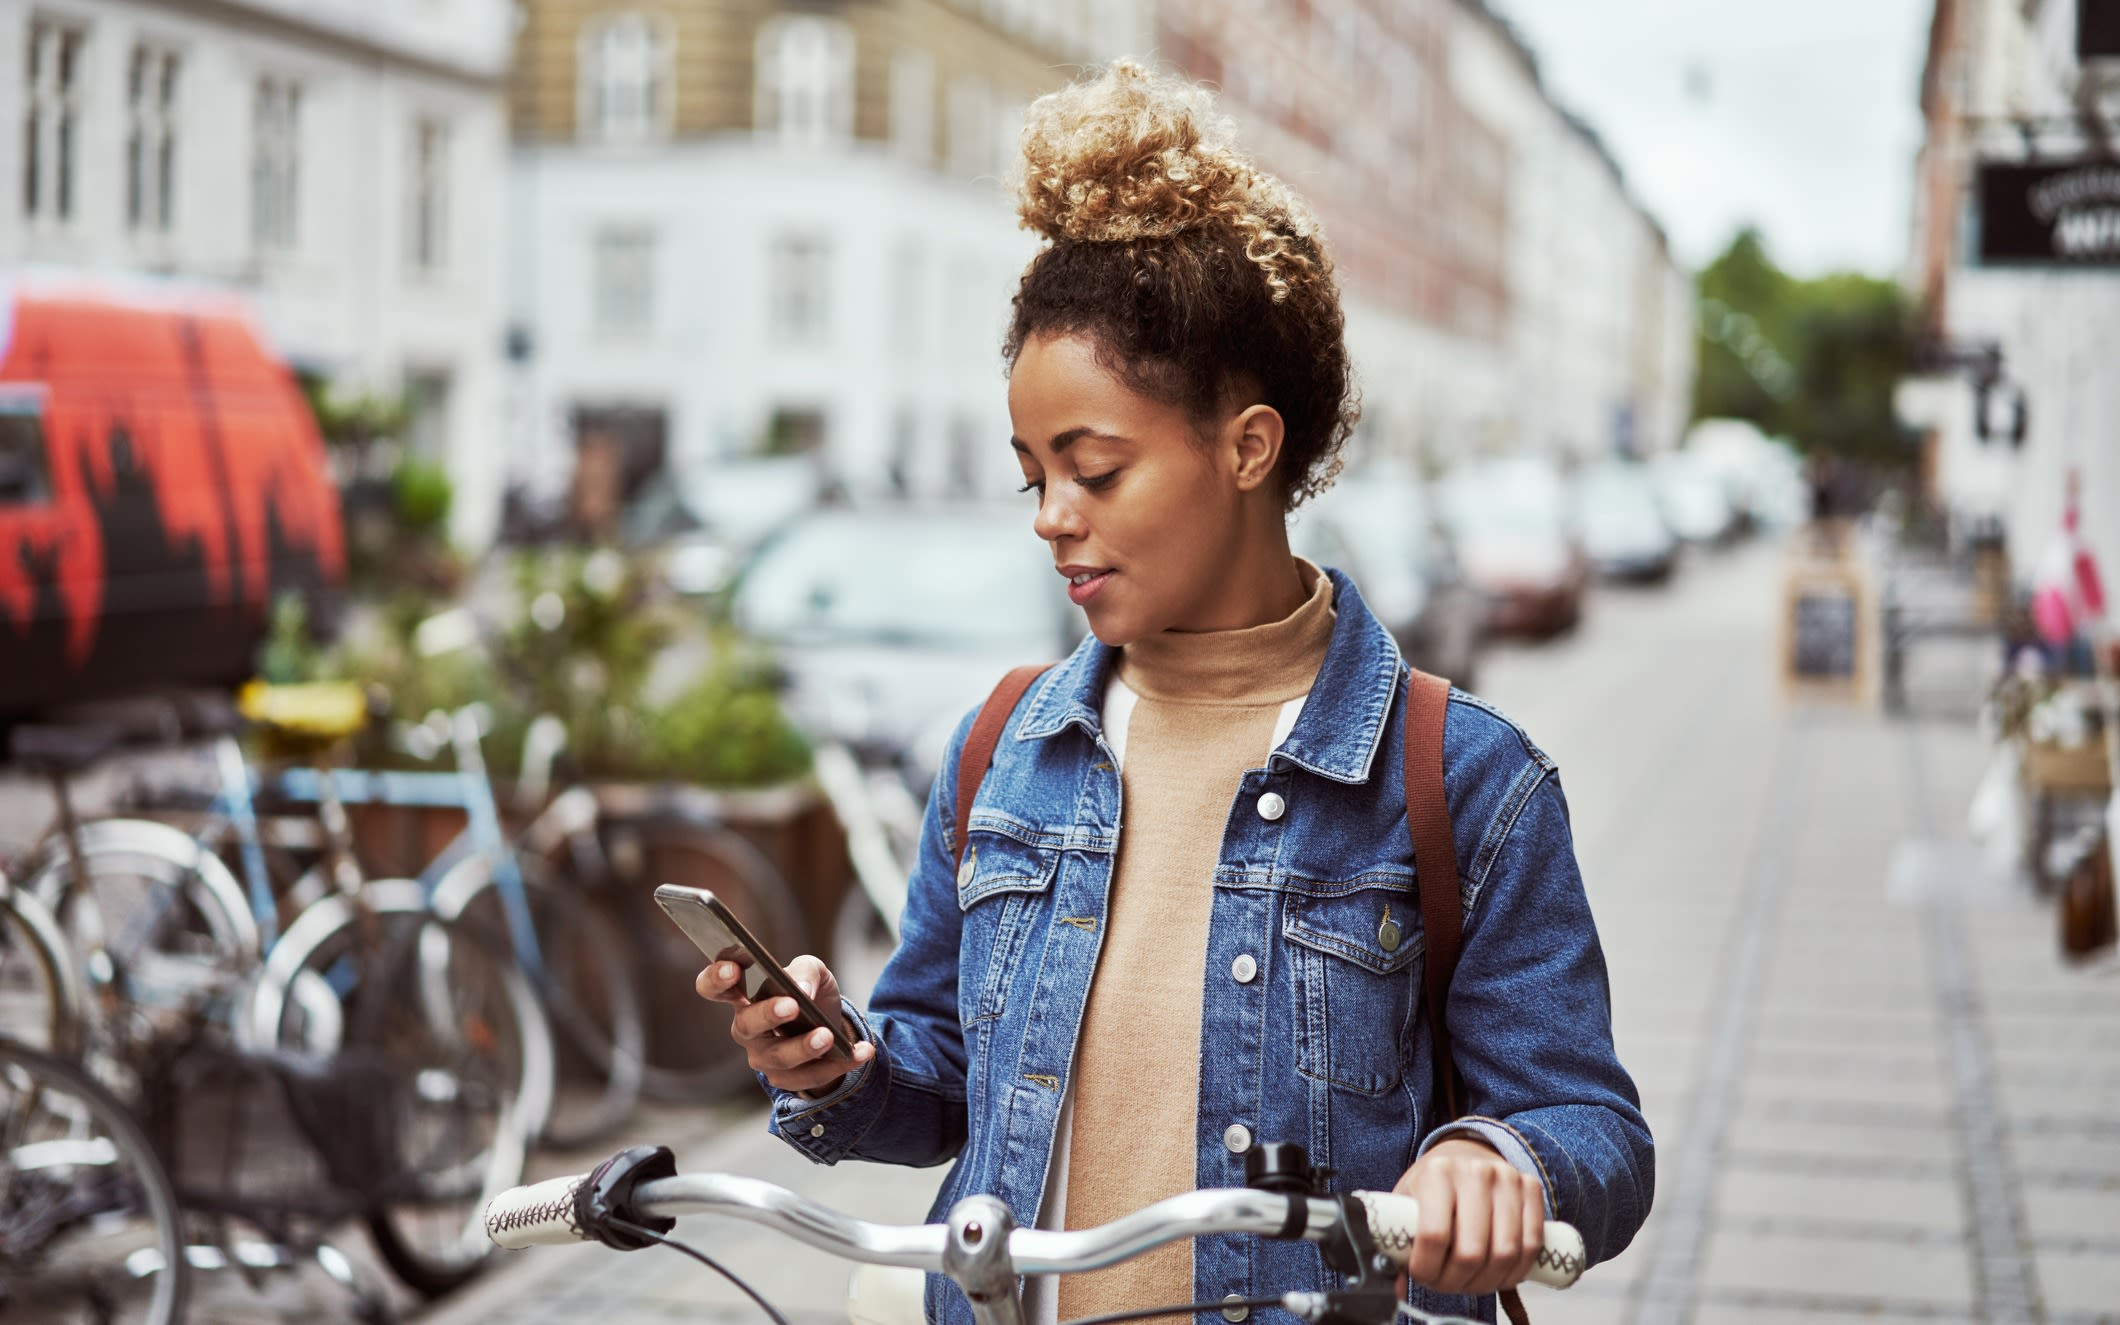 A woman standing with a bike, using a phone